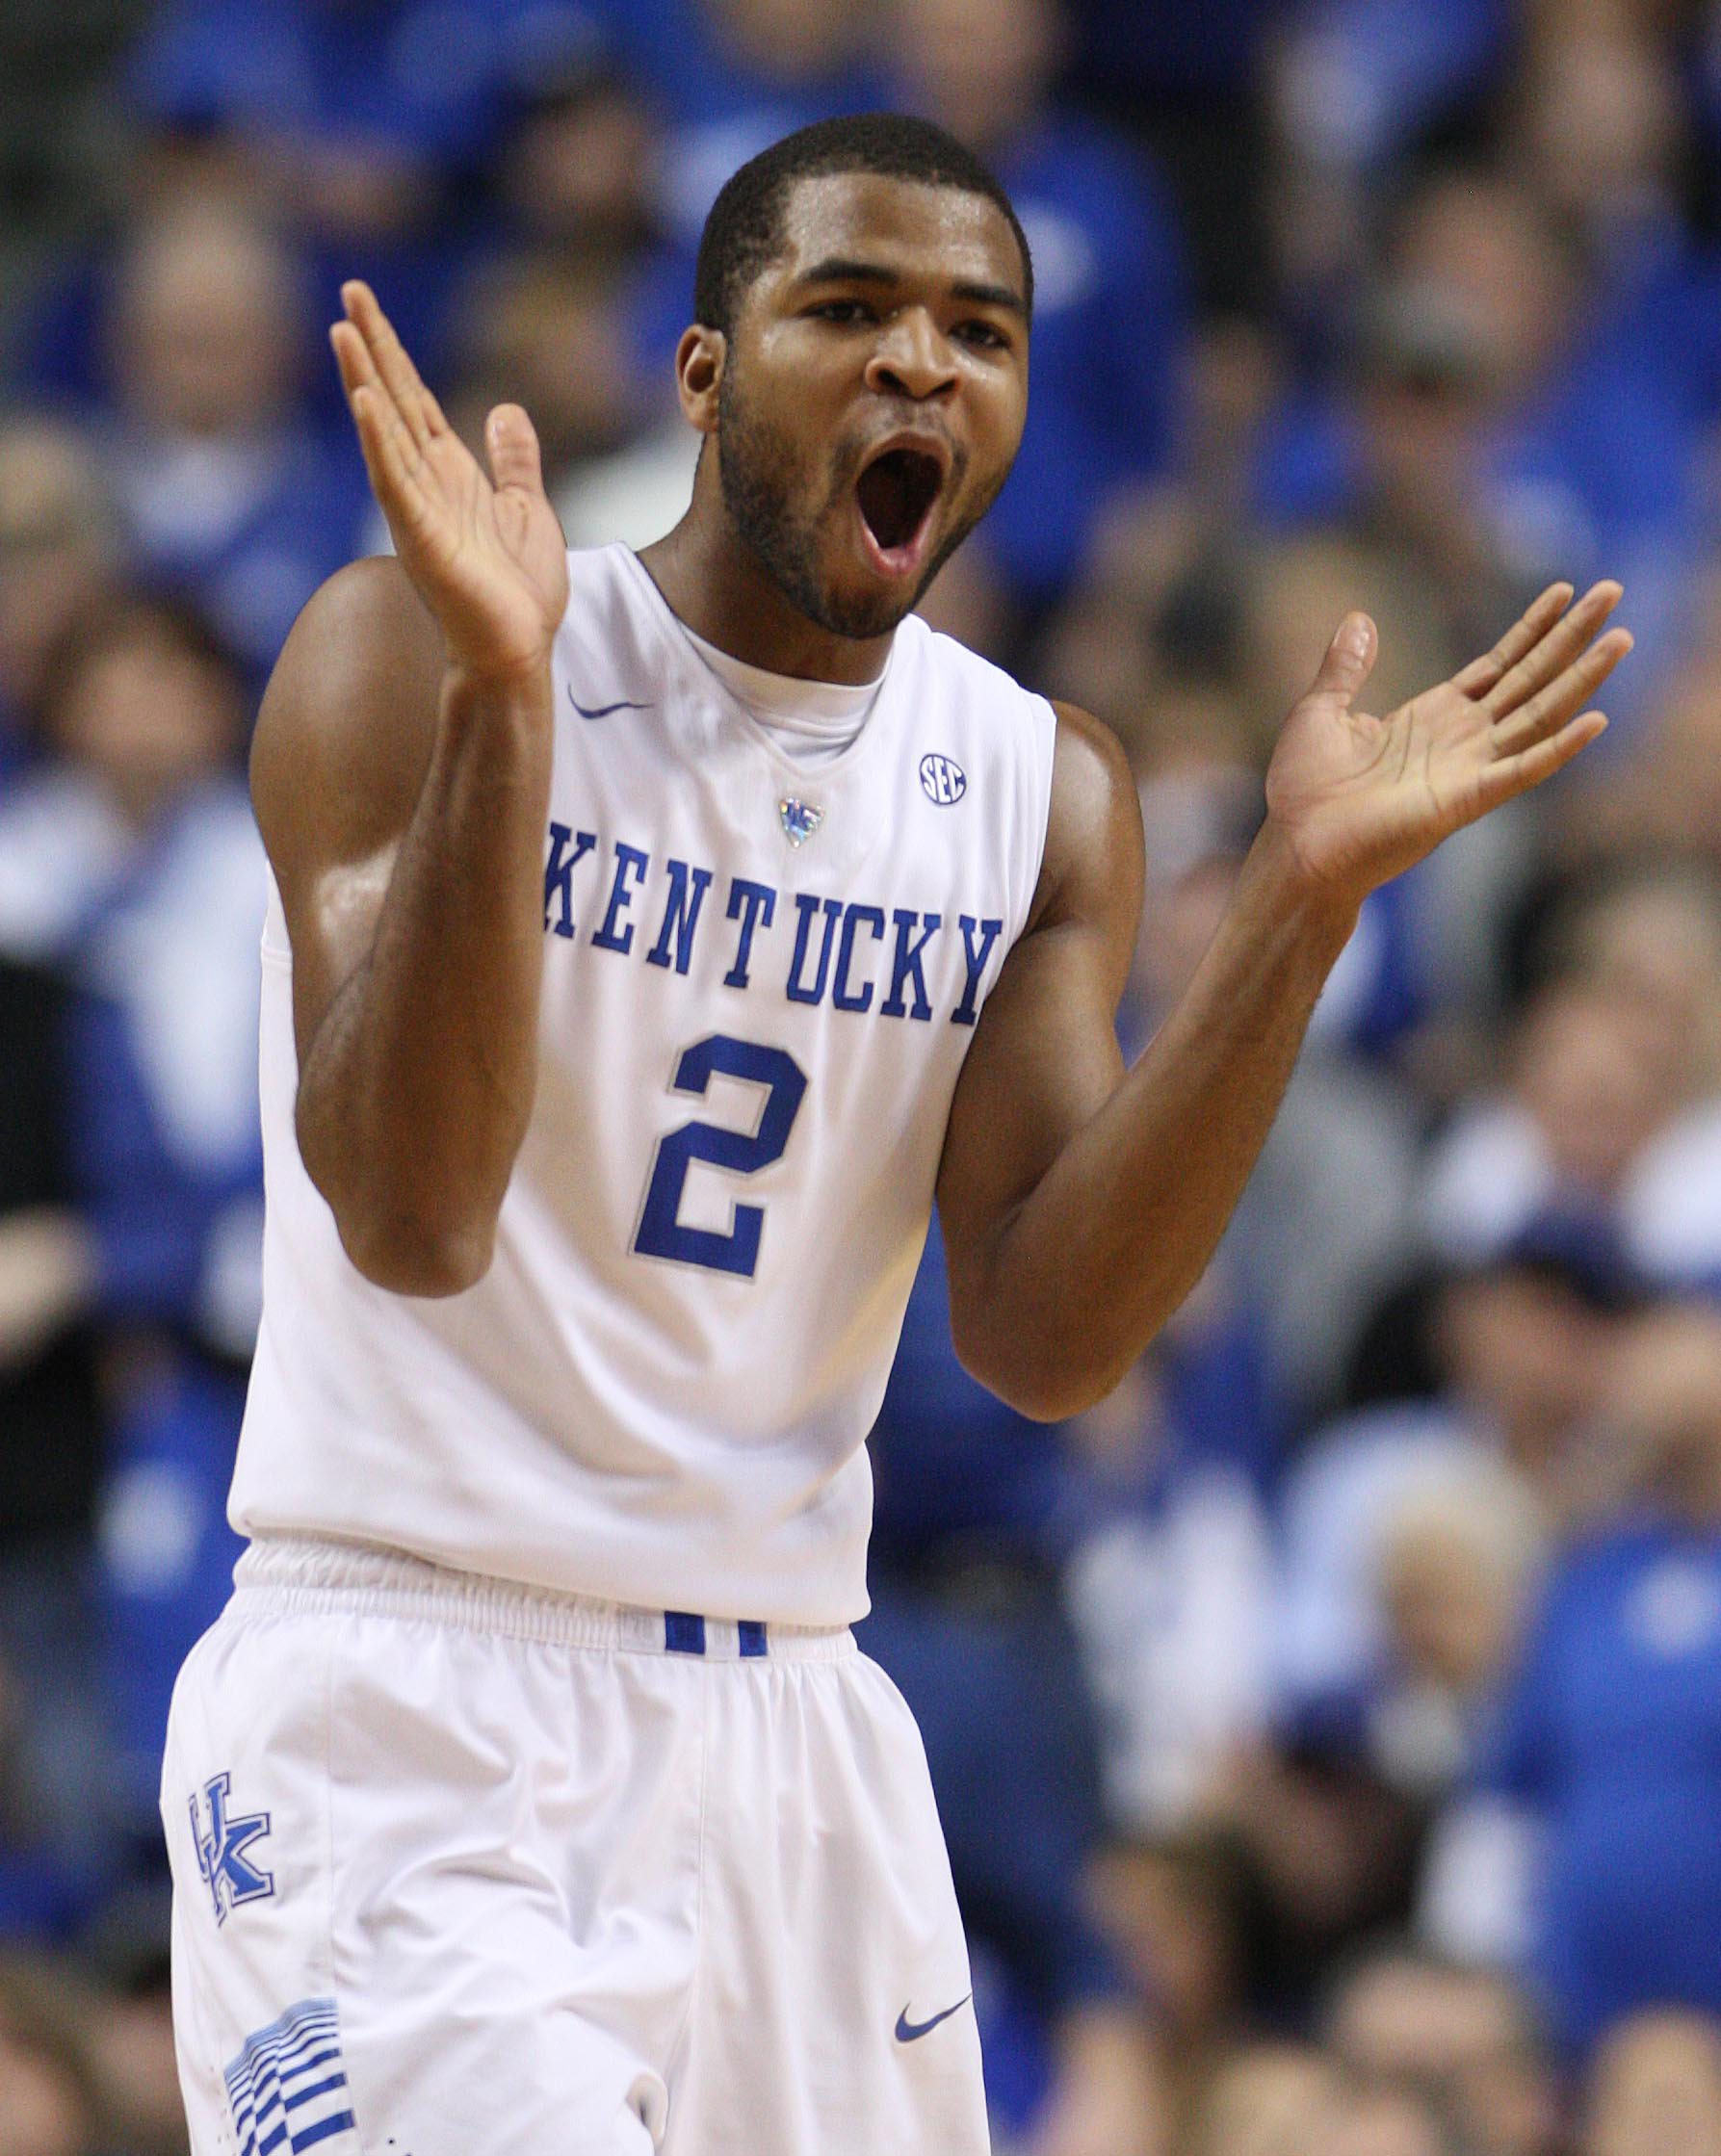 Aaron Harrison and Kentucky will be really tough if they can hit their outside shots. (USA Today Sports)